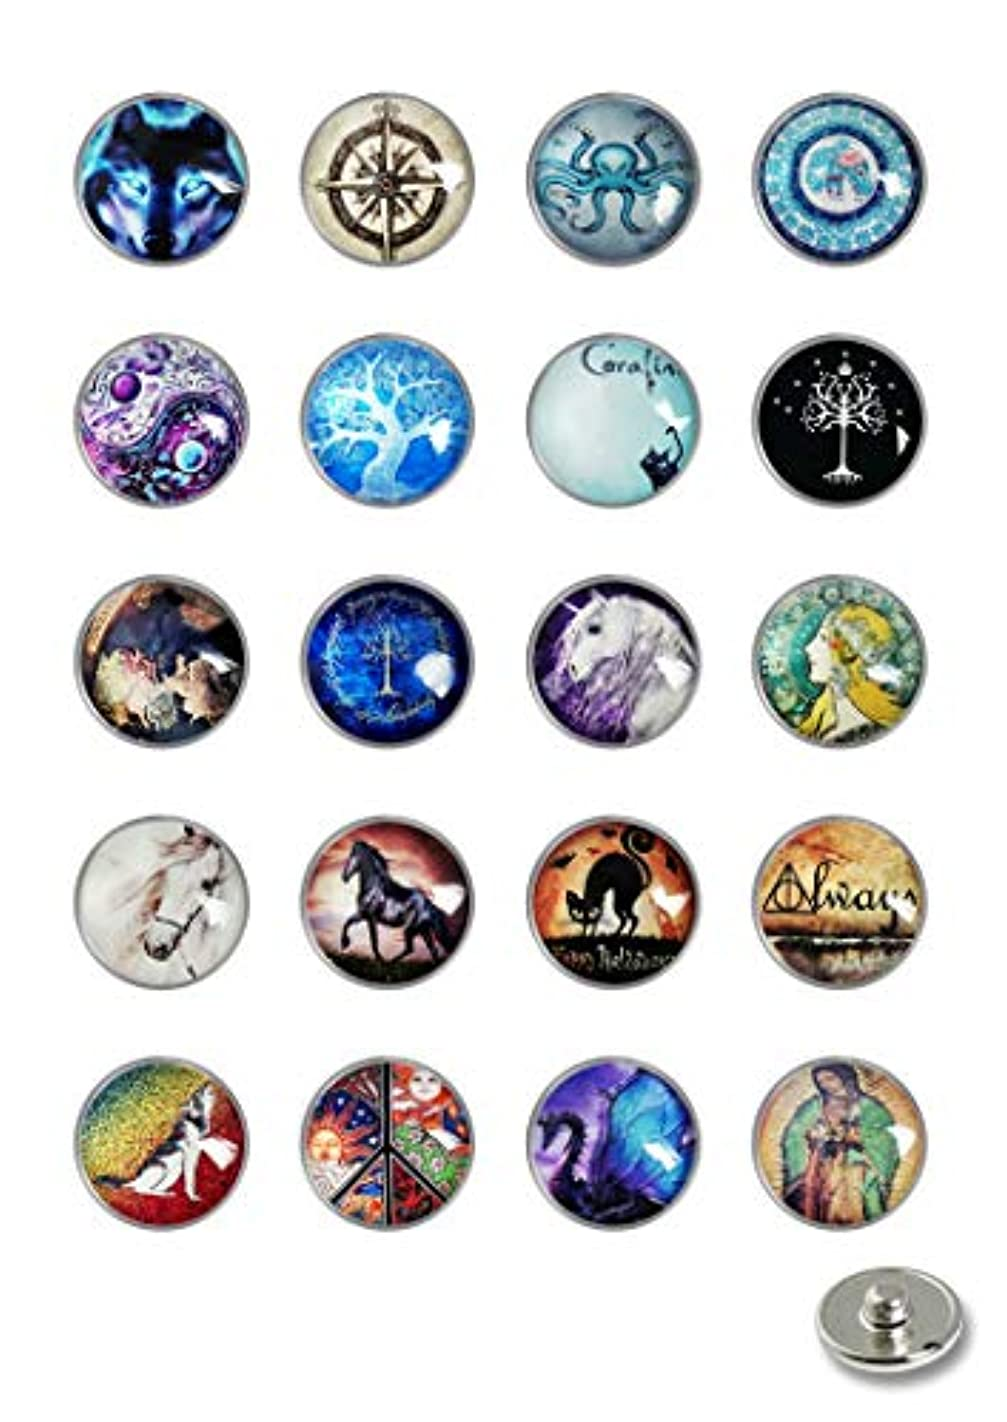 XuSuJuan Image Custom Pack of 20Pcs Style Glass Noosa Snaps Buttons 18-20mm for Interchangeable Snaps Jewelry (A3) z41143961919